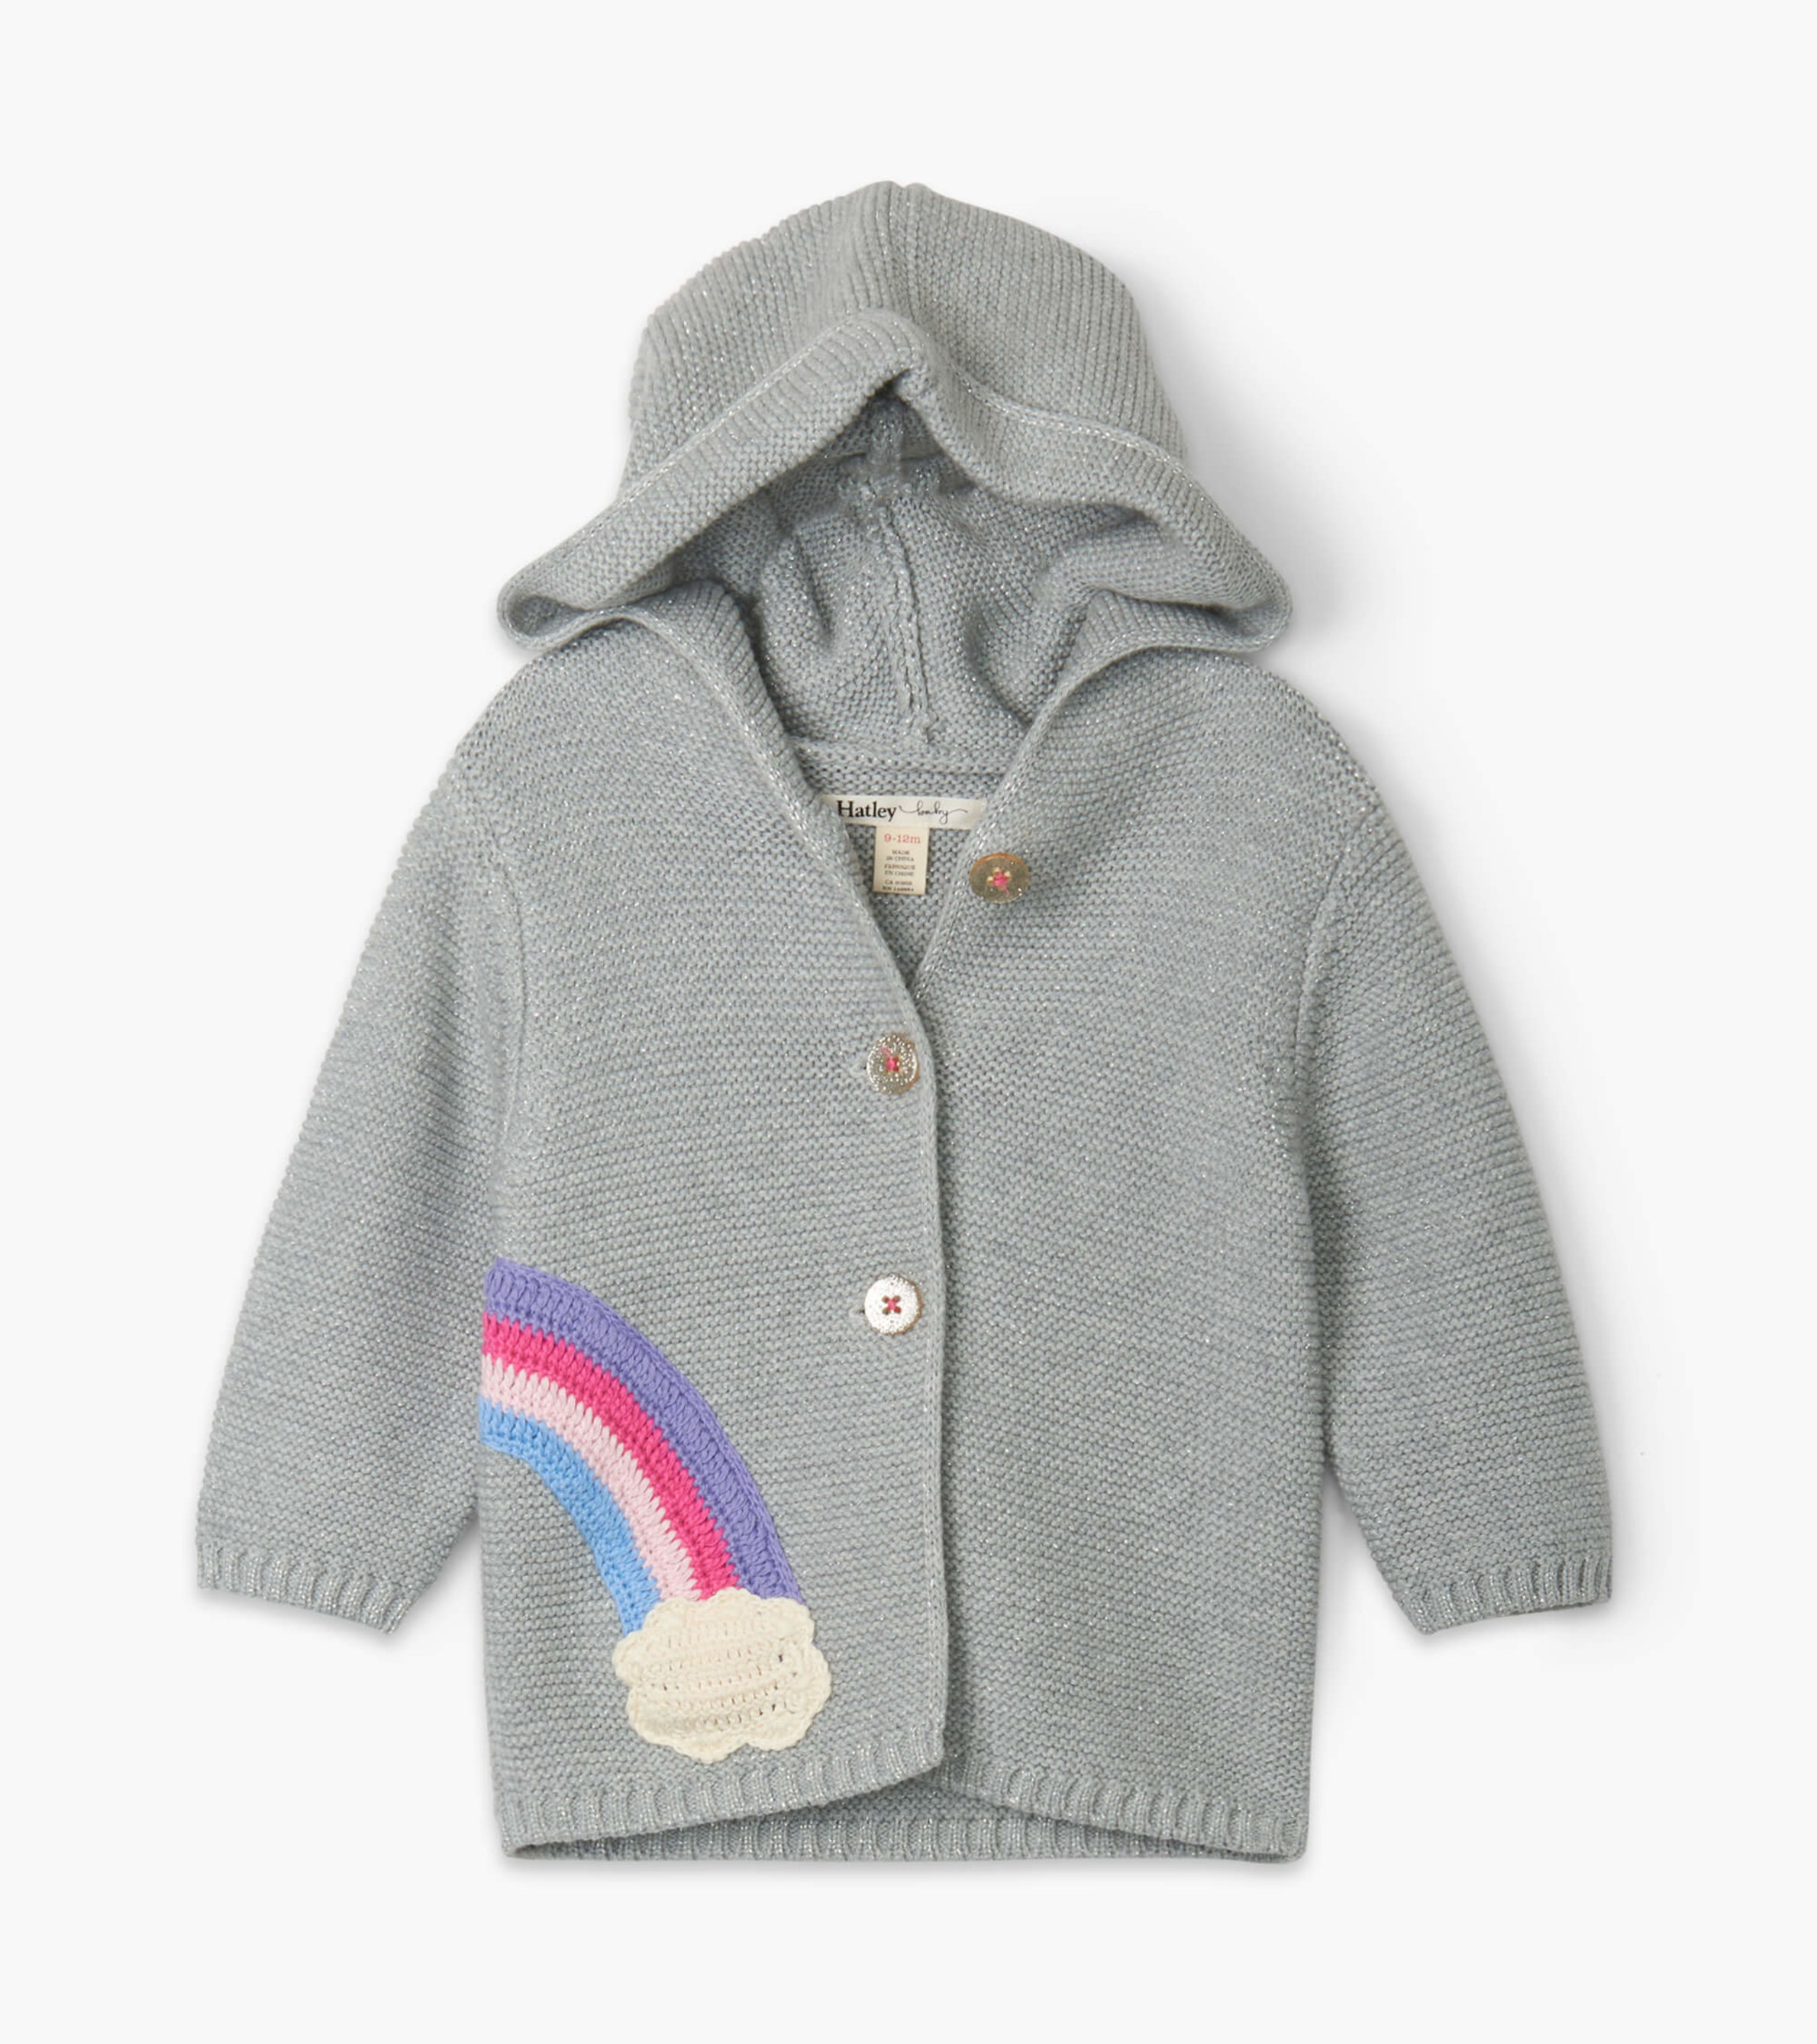 SALE £35.20 Hatley Shimmer Grey Baby Sweater Hoodie (was £44.00)